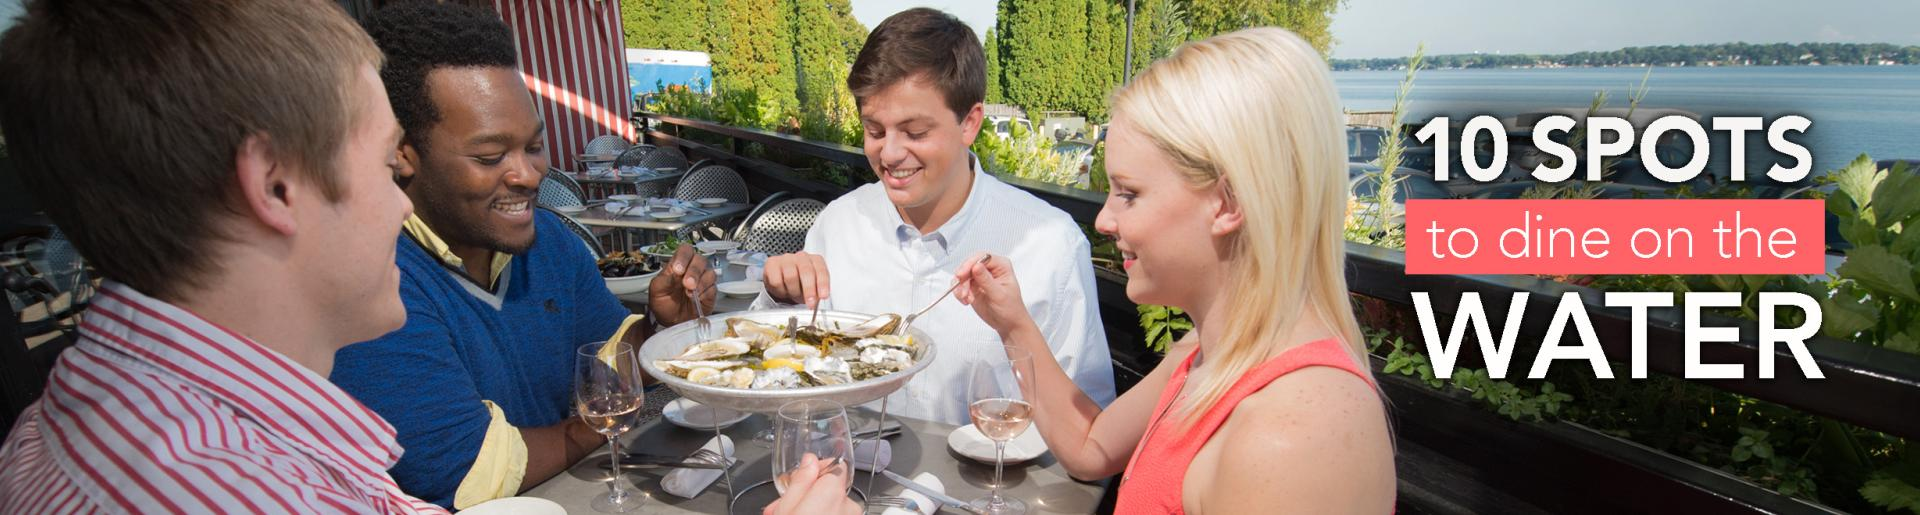 10 Spots to Dine on the Water